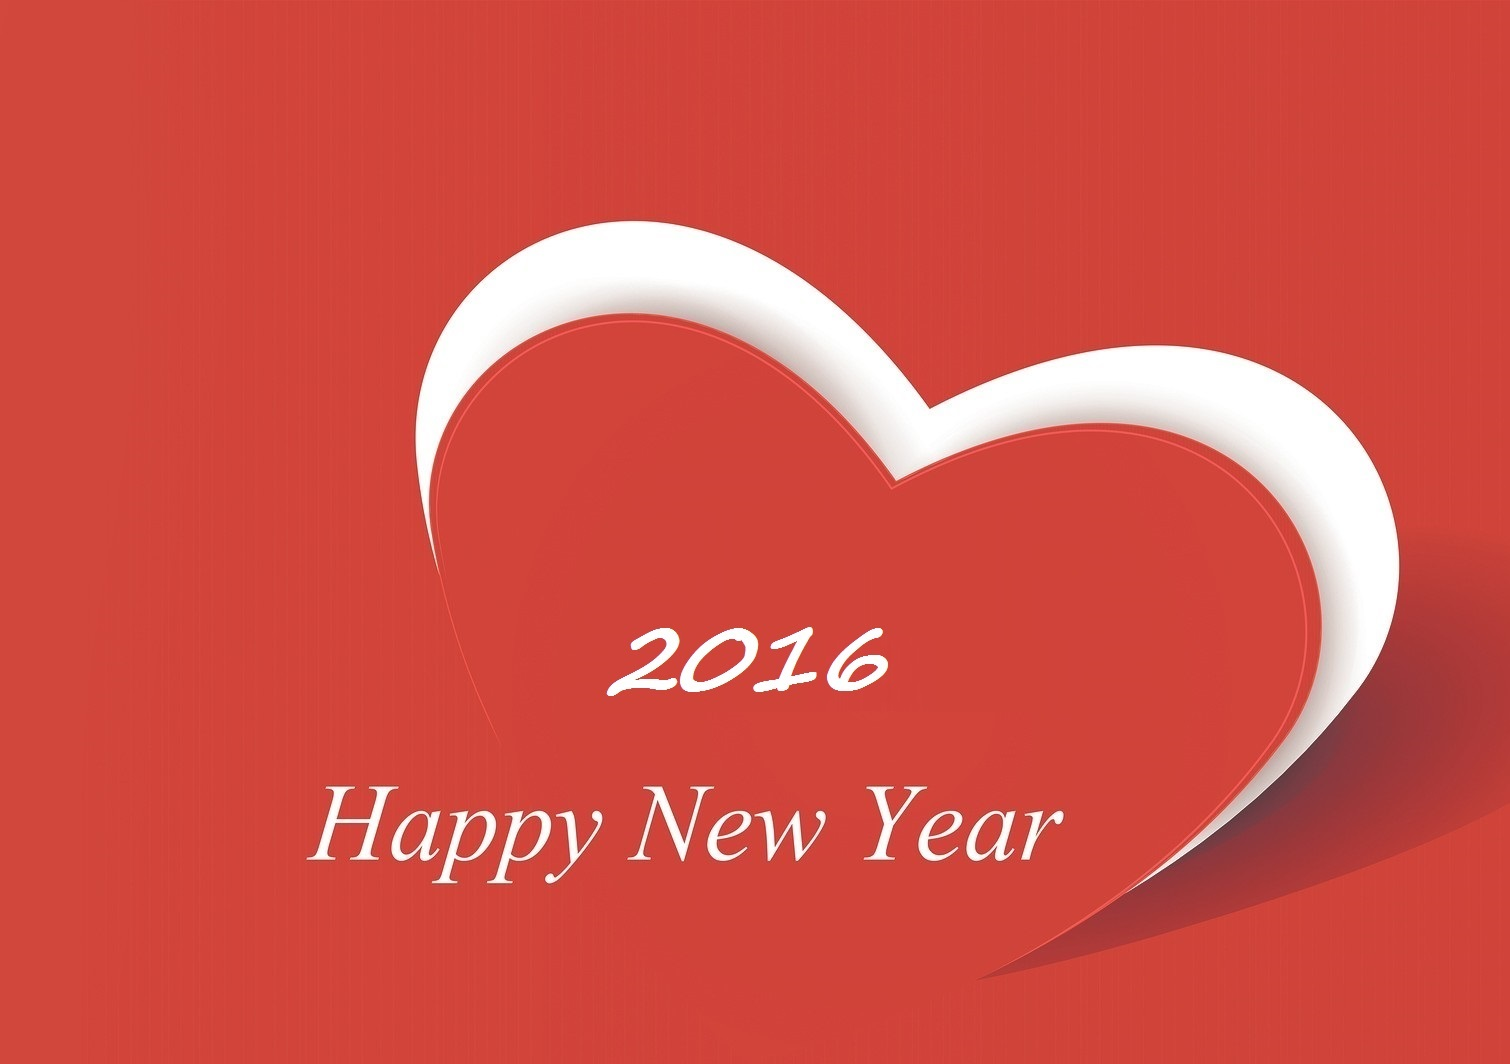 happy new year 2016 hd wallpapers imagesnew year wishes